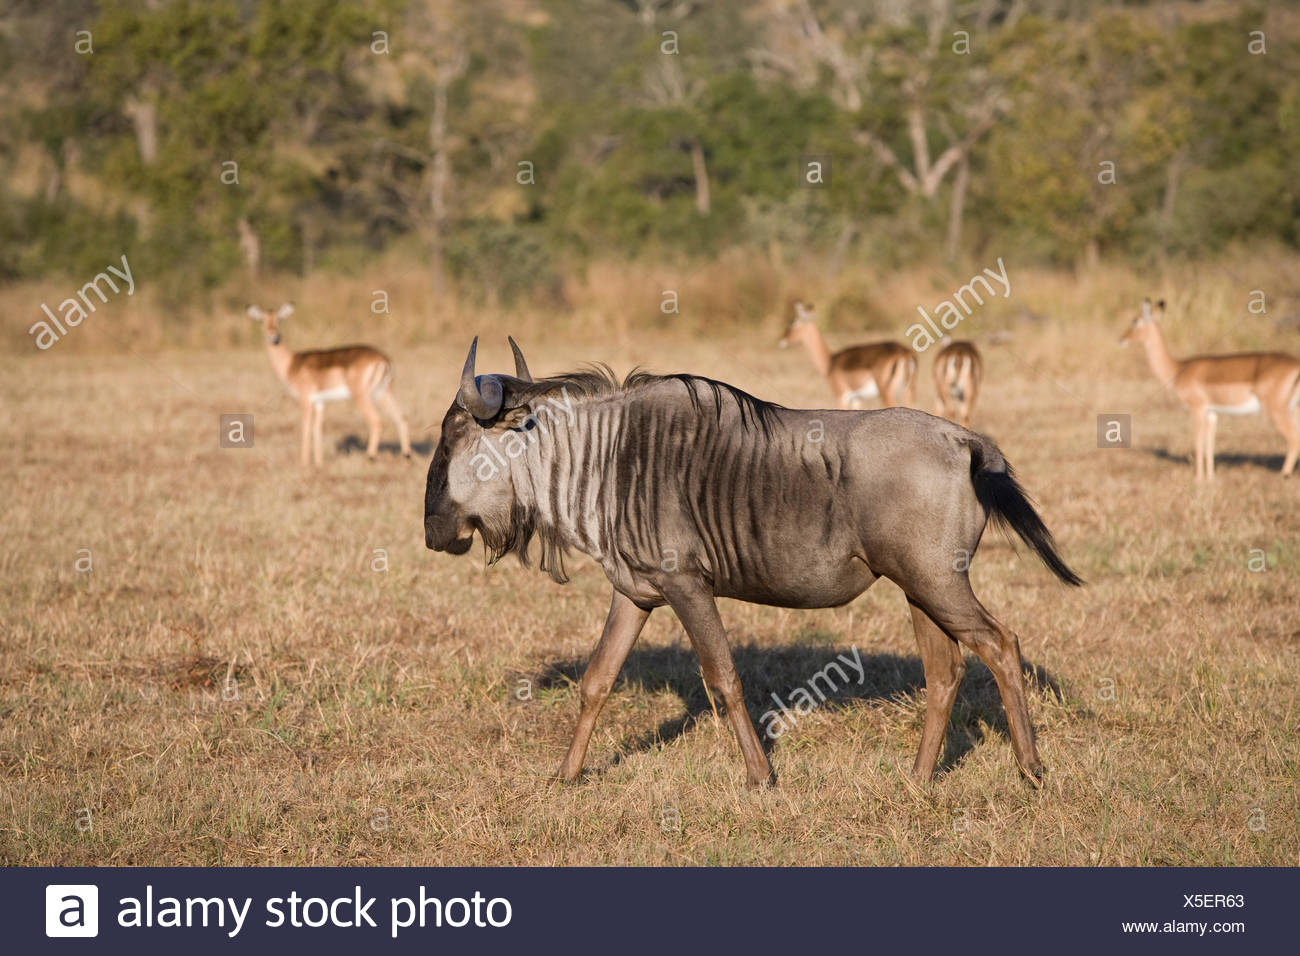 Wilderbeast and impalas in African Bush, South Africa - Stock Image